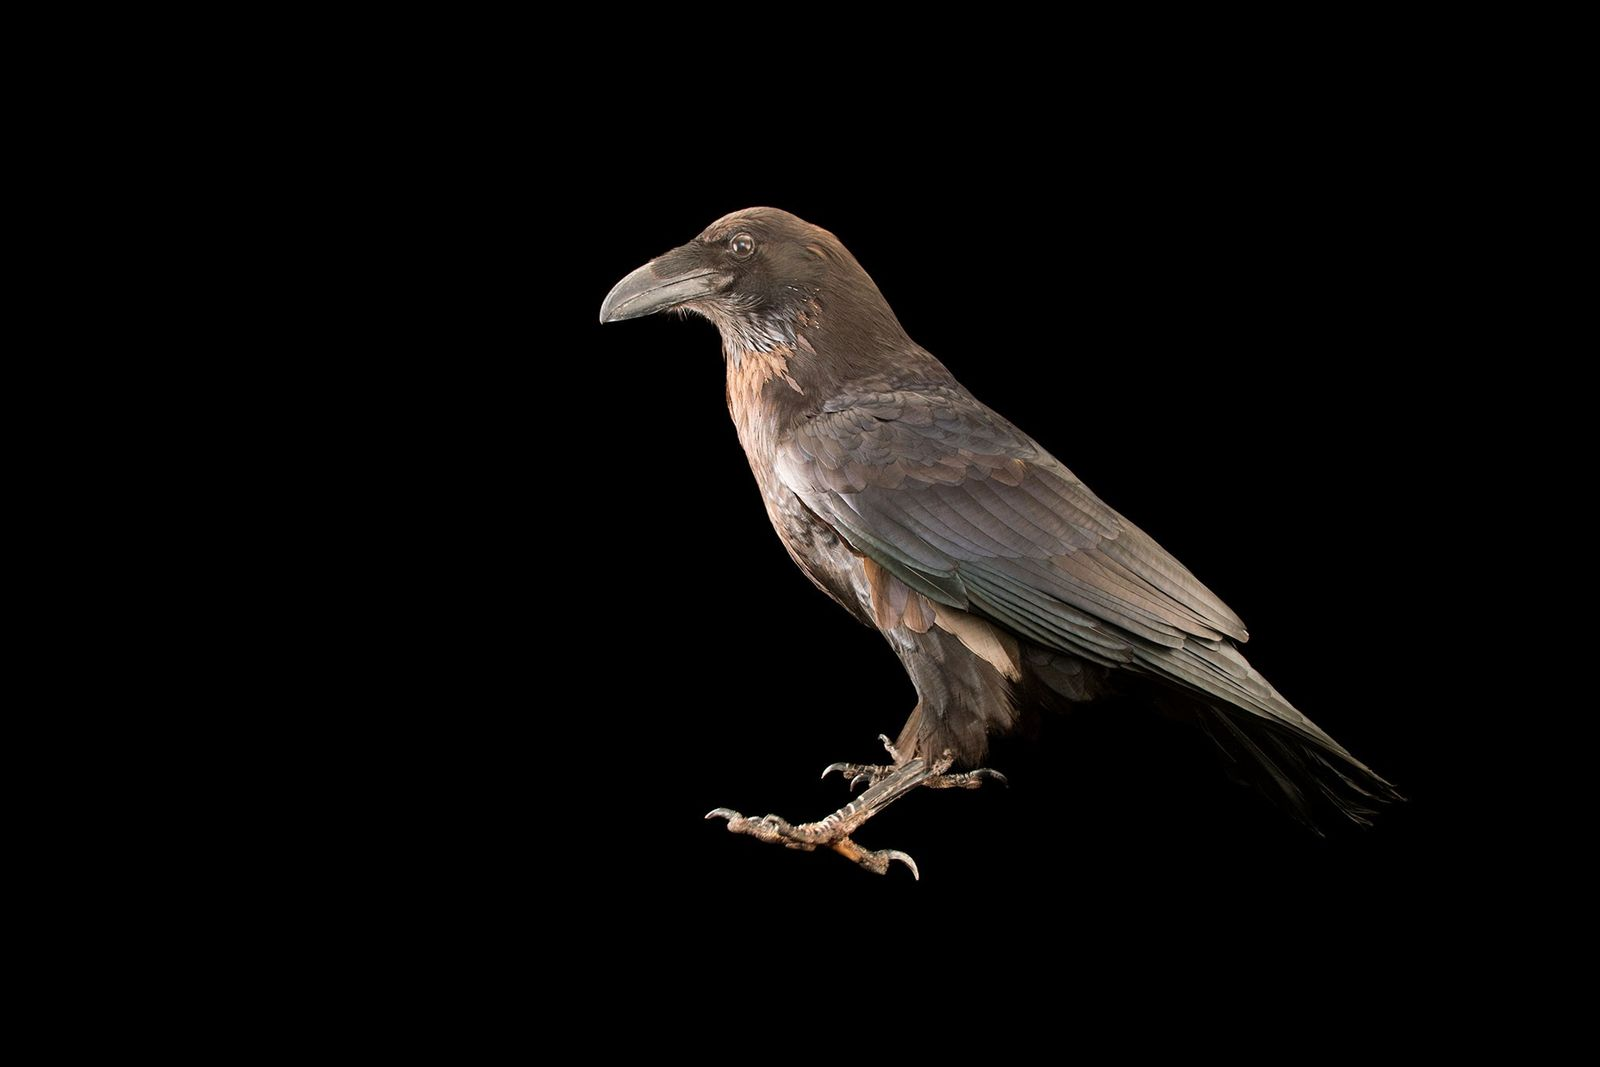 A common raven, Corvus corax principalis, pictured at the Los Angeles Zoo. Though they share many ...